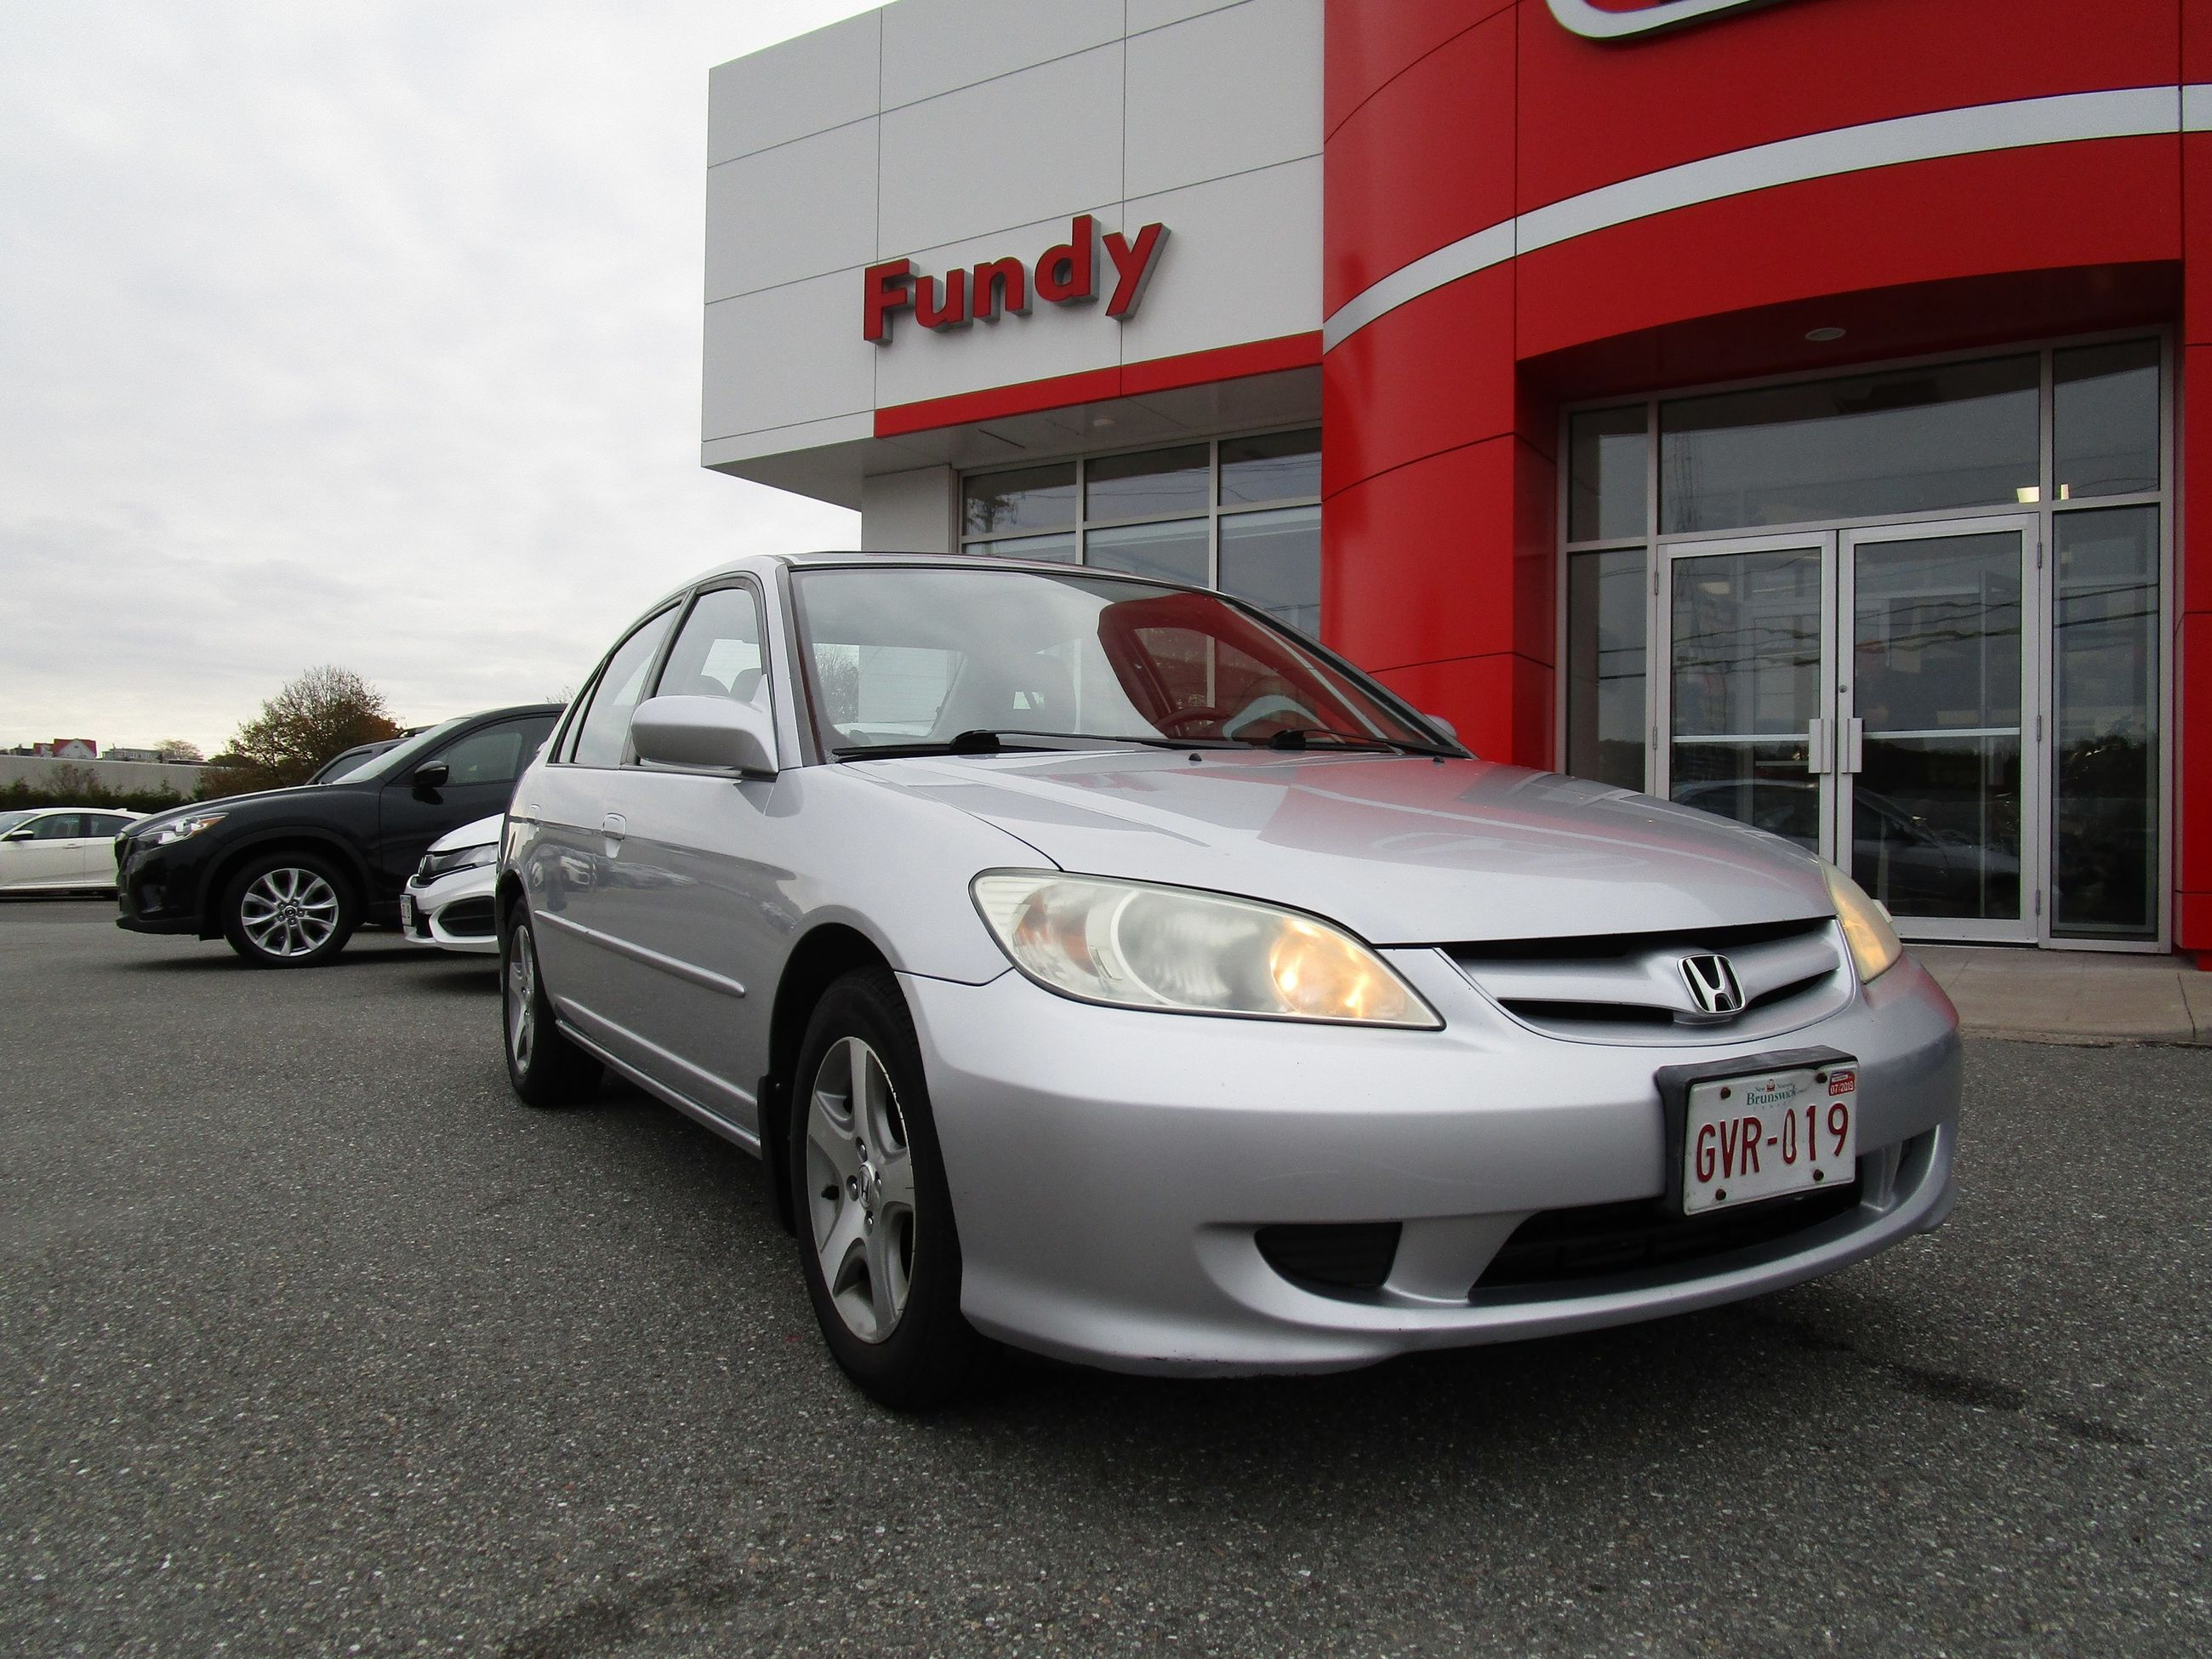 2005 Honda Civic Si W Sunroof Used For Sale In A C Low Kilometres